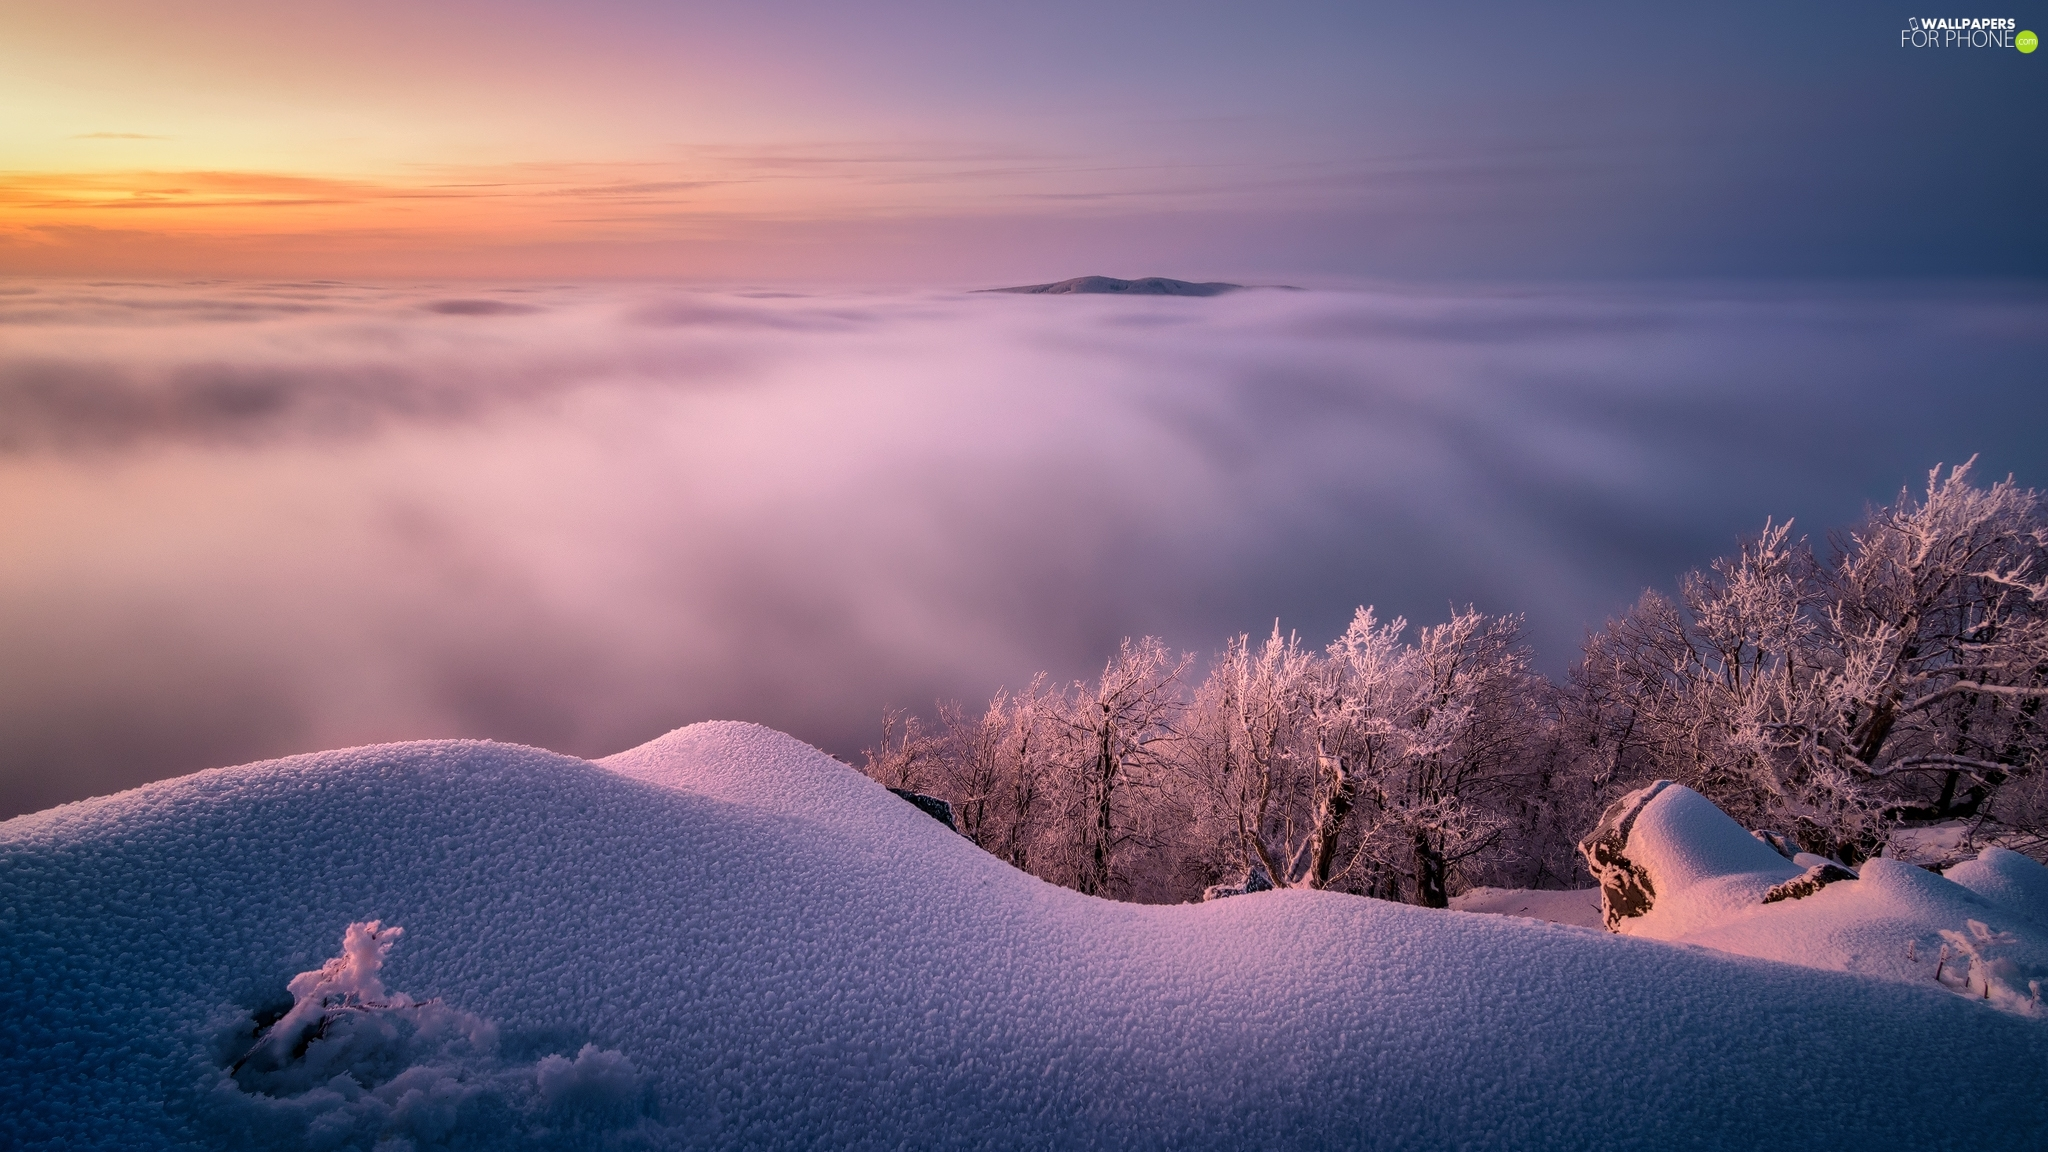 Mountains, Fog, Sunrise, clouds, viewes, snow, winter, trees